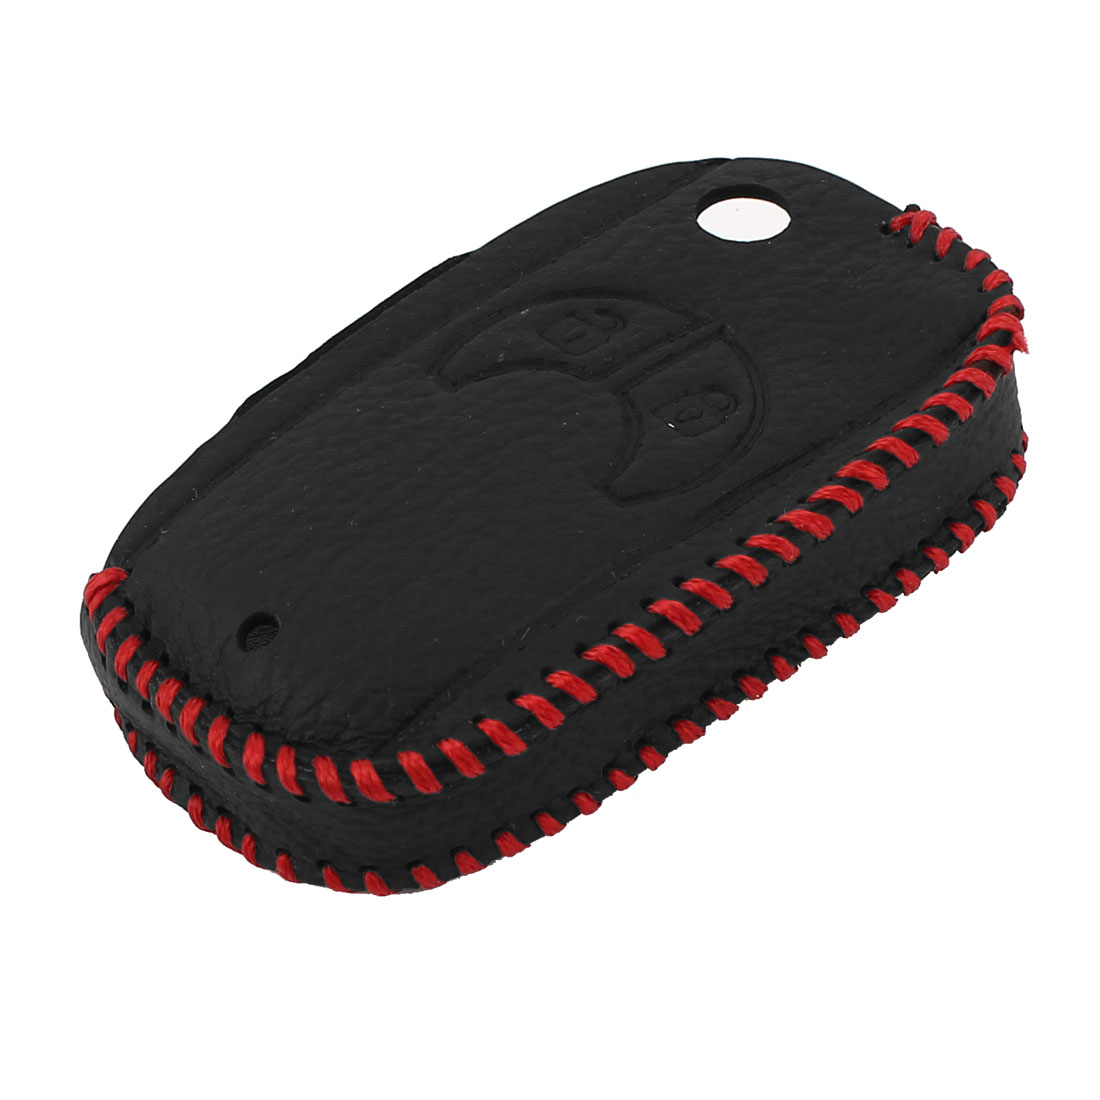 Auto Car Black Faux Leather Remote Key Fob Holder Case Cover Protector for Opel